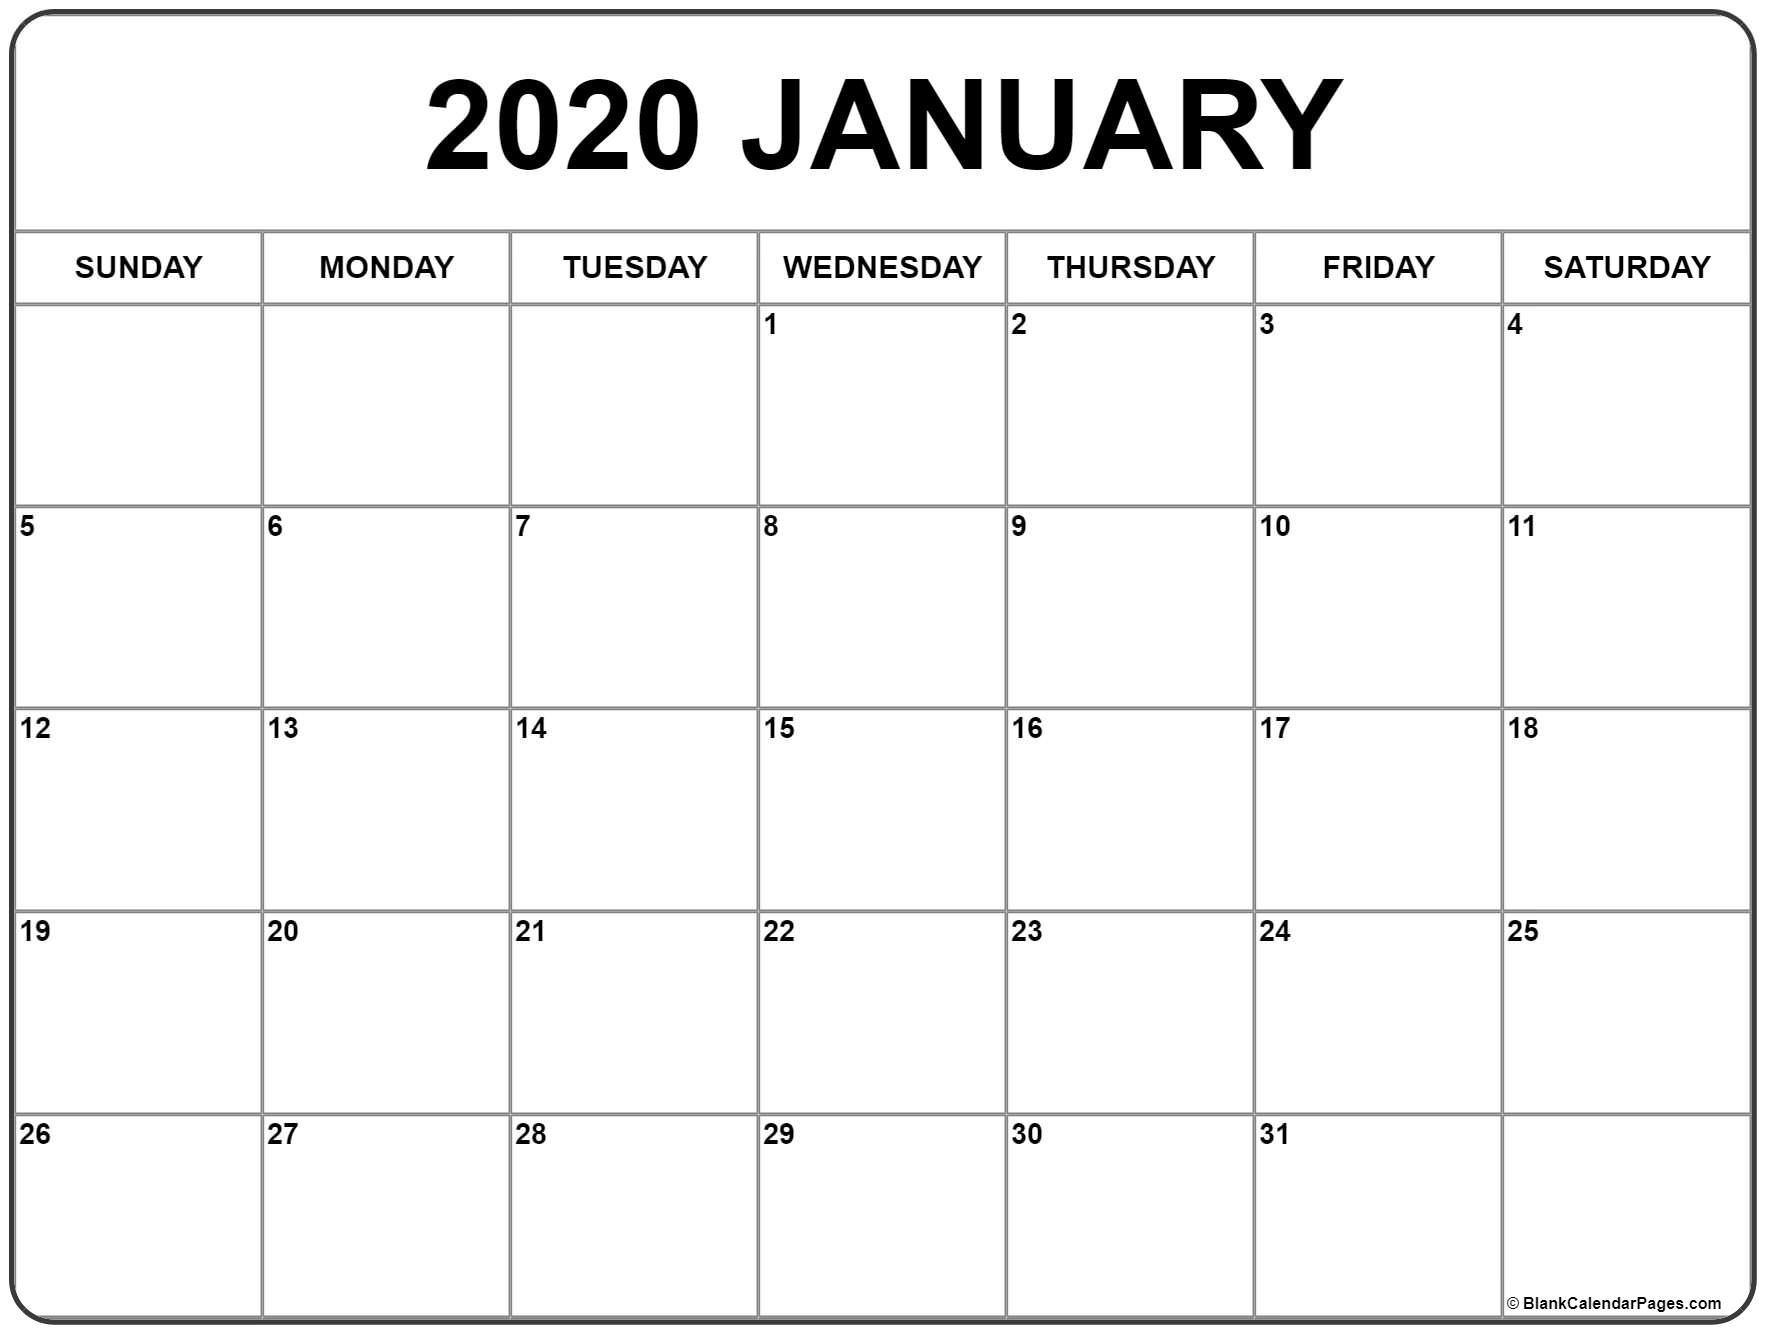 January 2020 Calendar | Free Printable Monthly Calendars-Printable Monthly Calendar January 2020